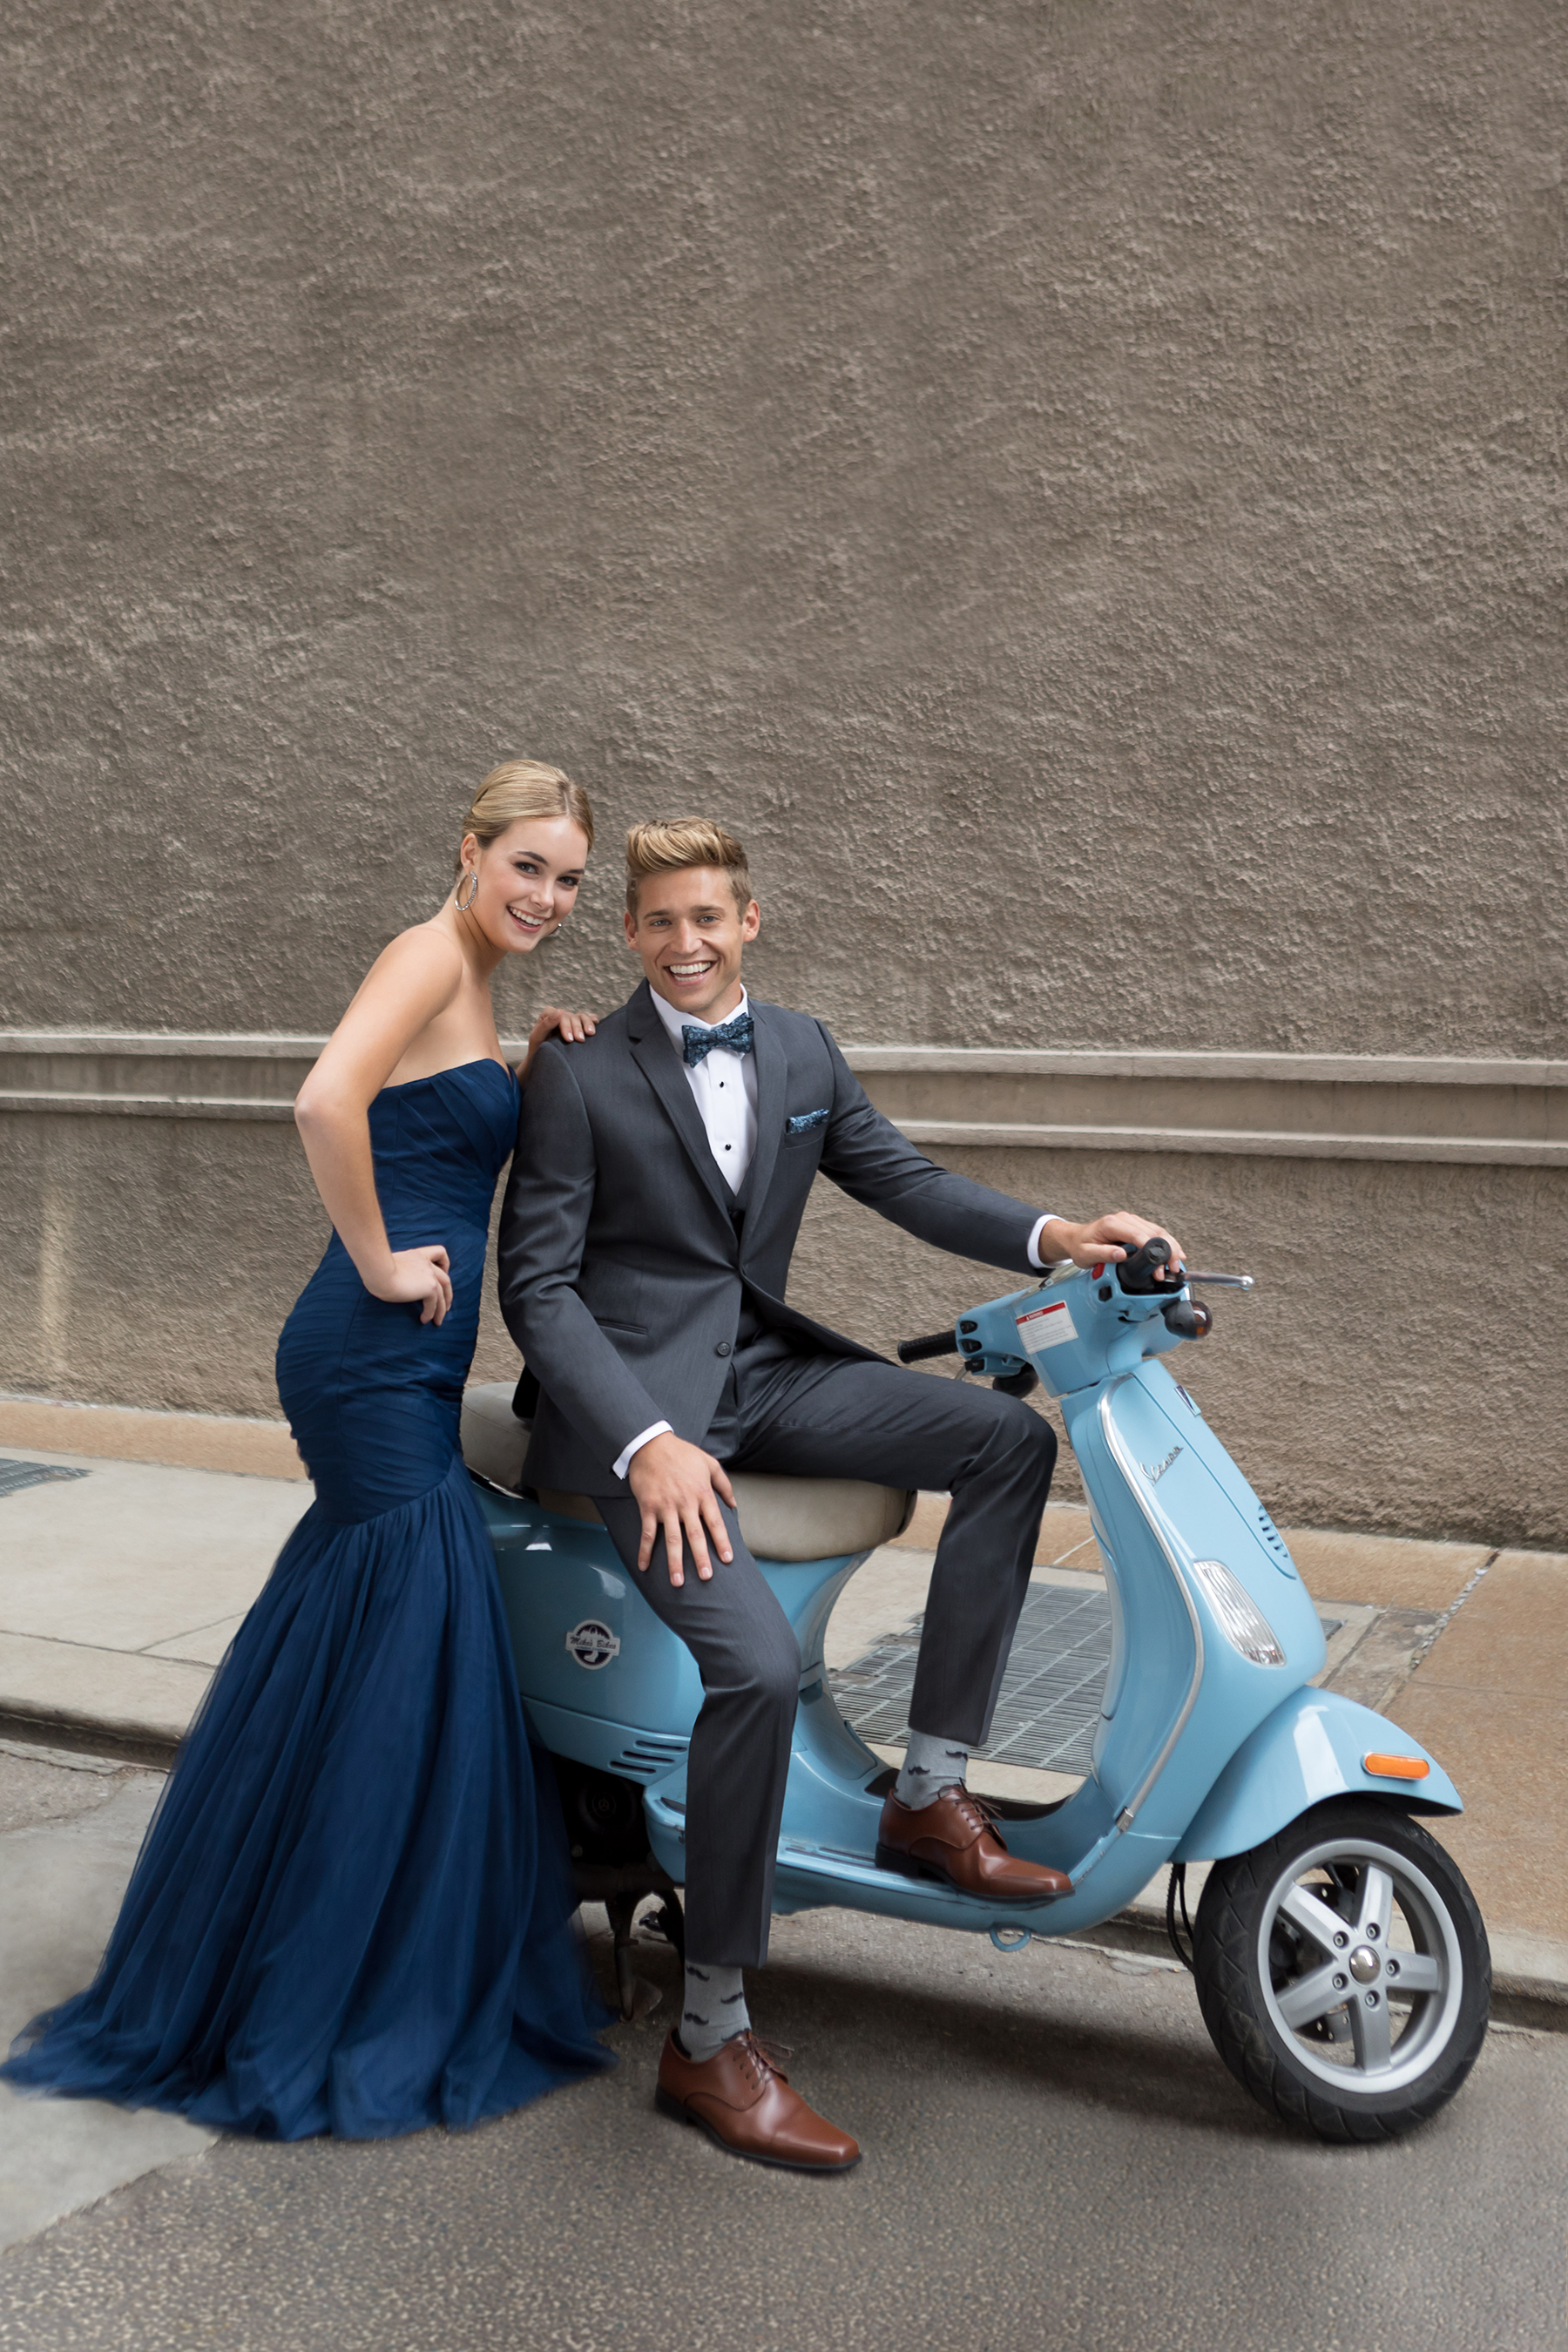 Scoot on in here and order your tuxedo! - (Note: Due to varying weather conditions in the Rocky Mountains, taking your date to prom on a scooter is not recommended.)